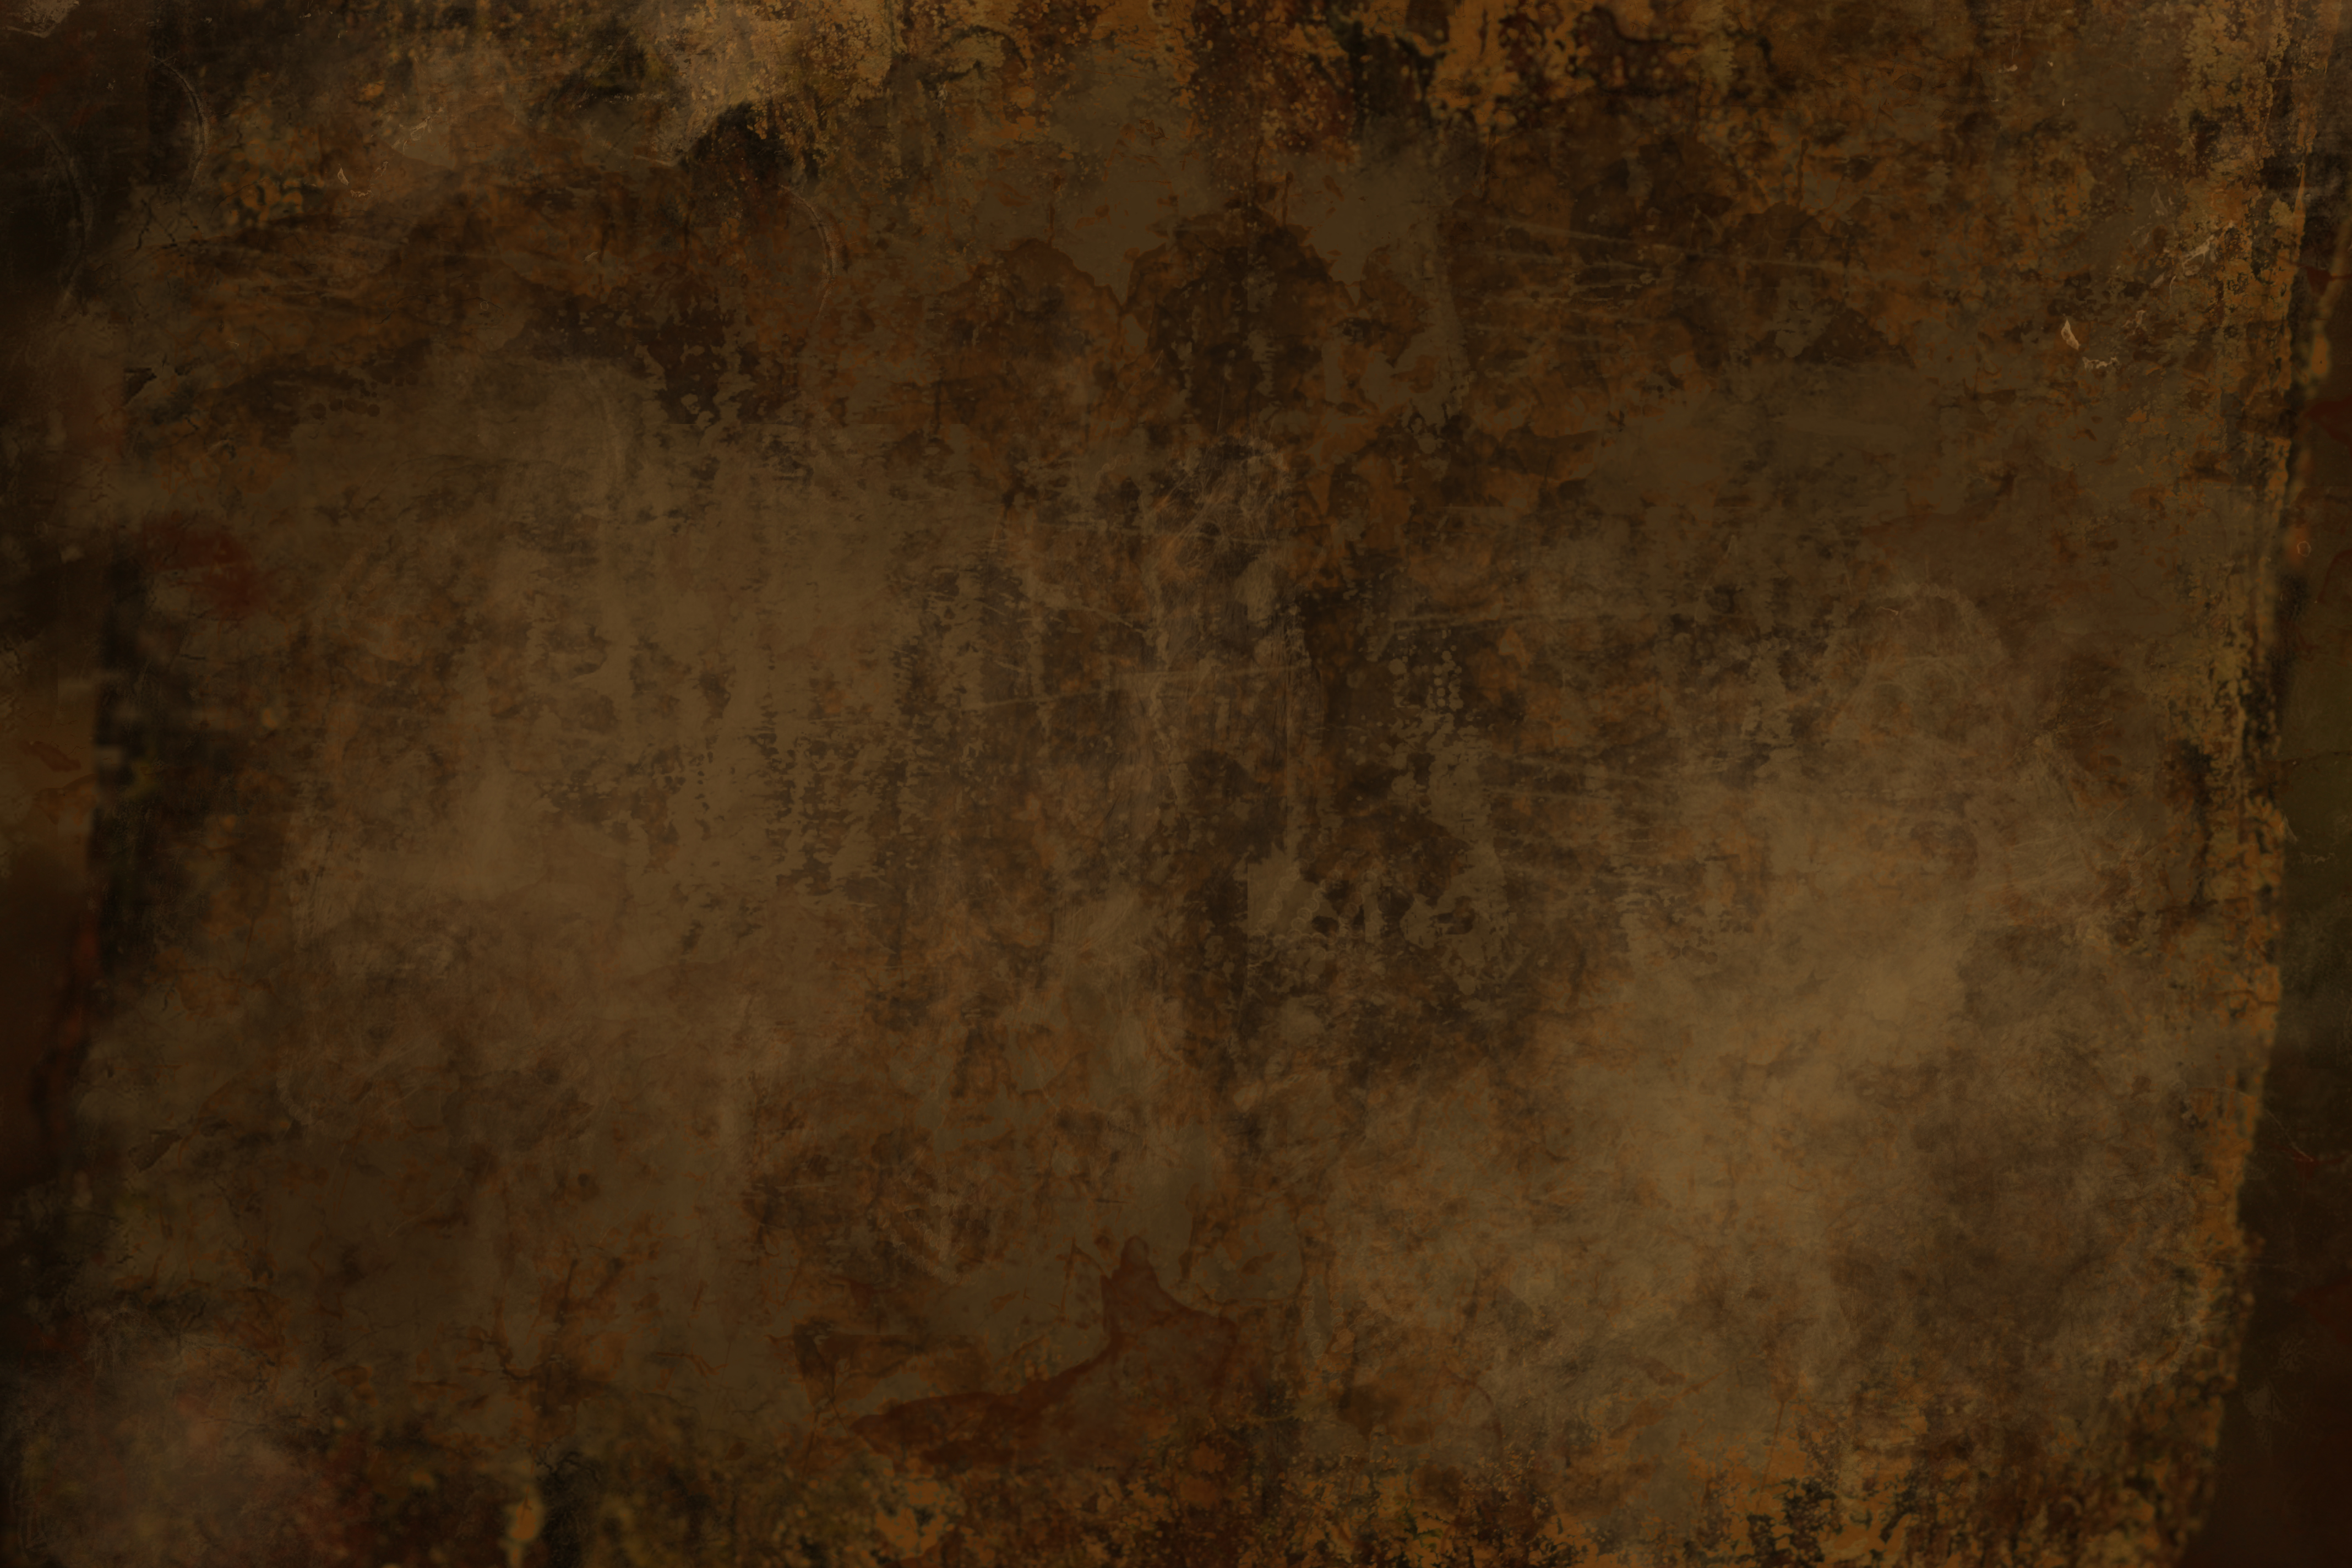 Grungy brown texture